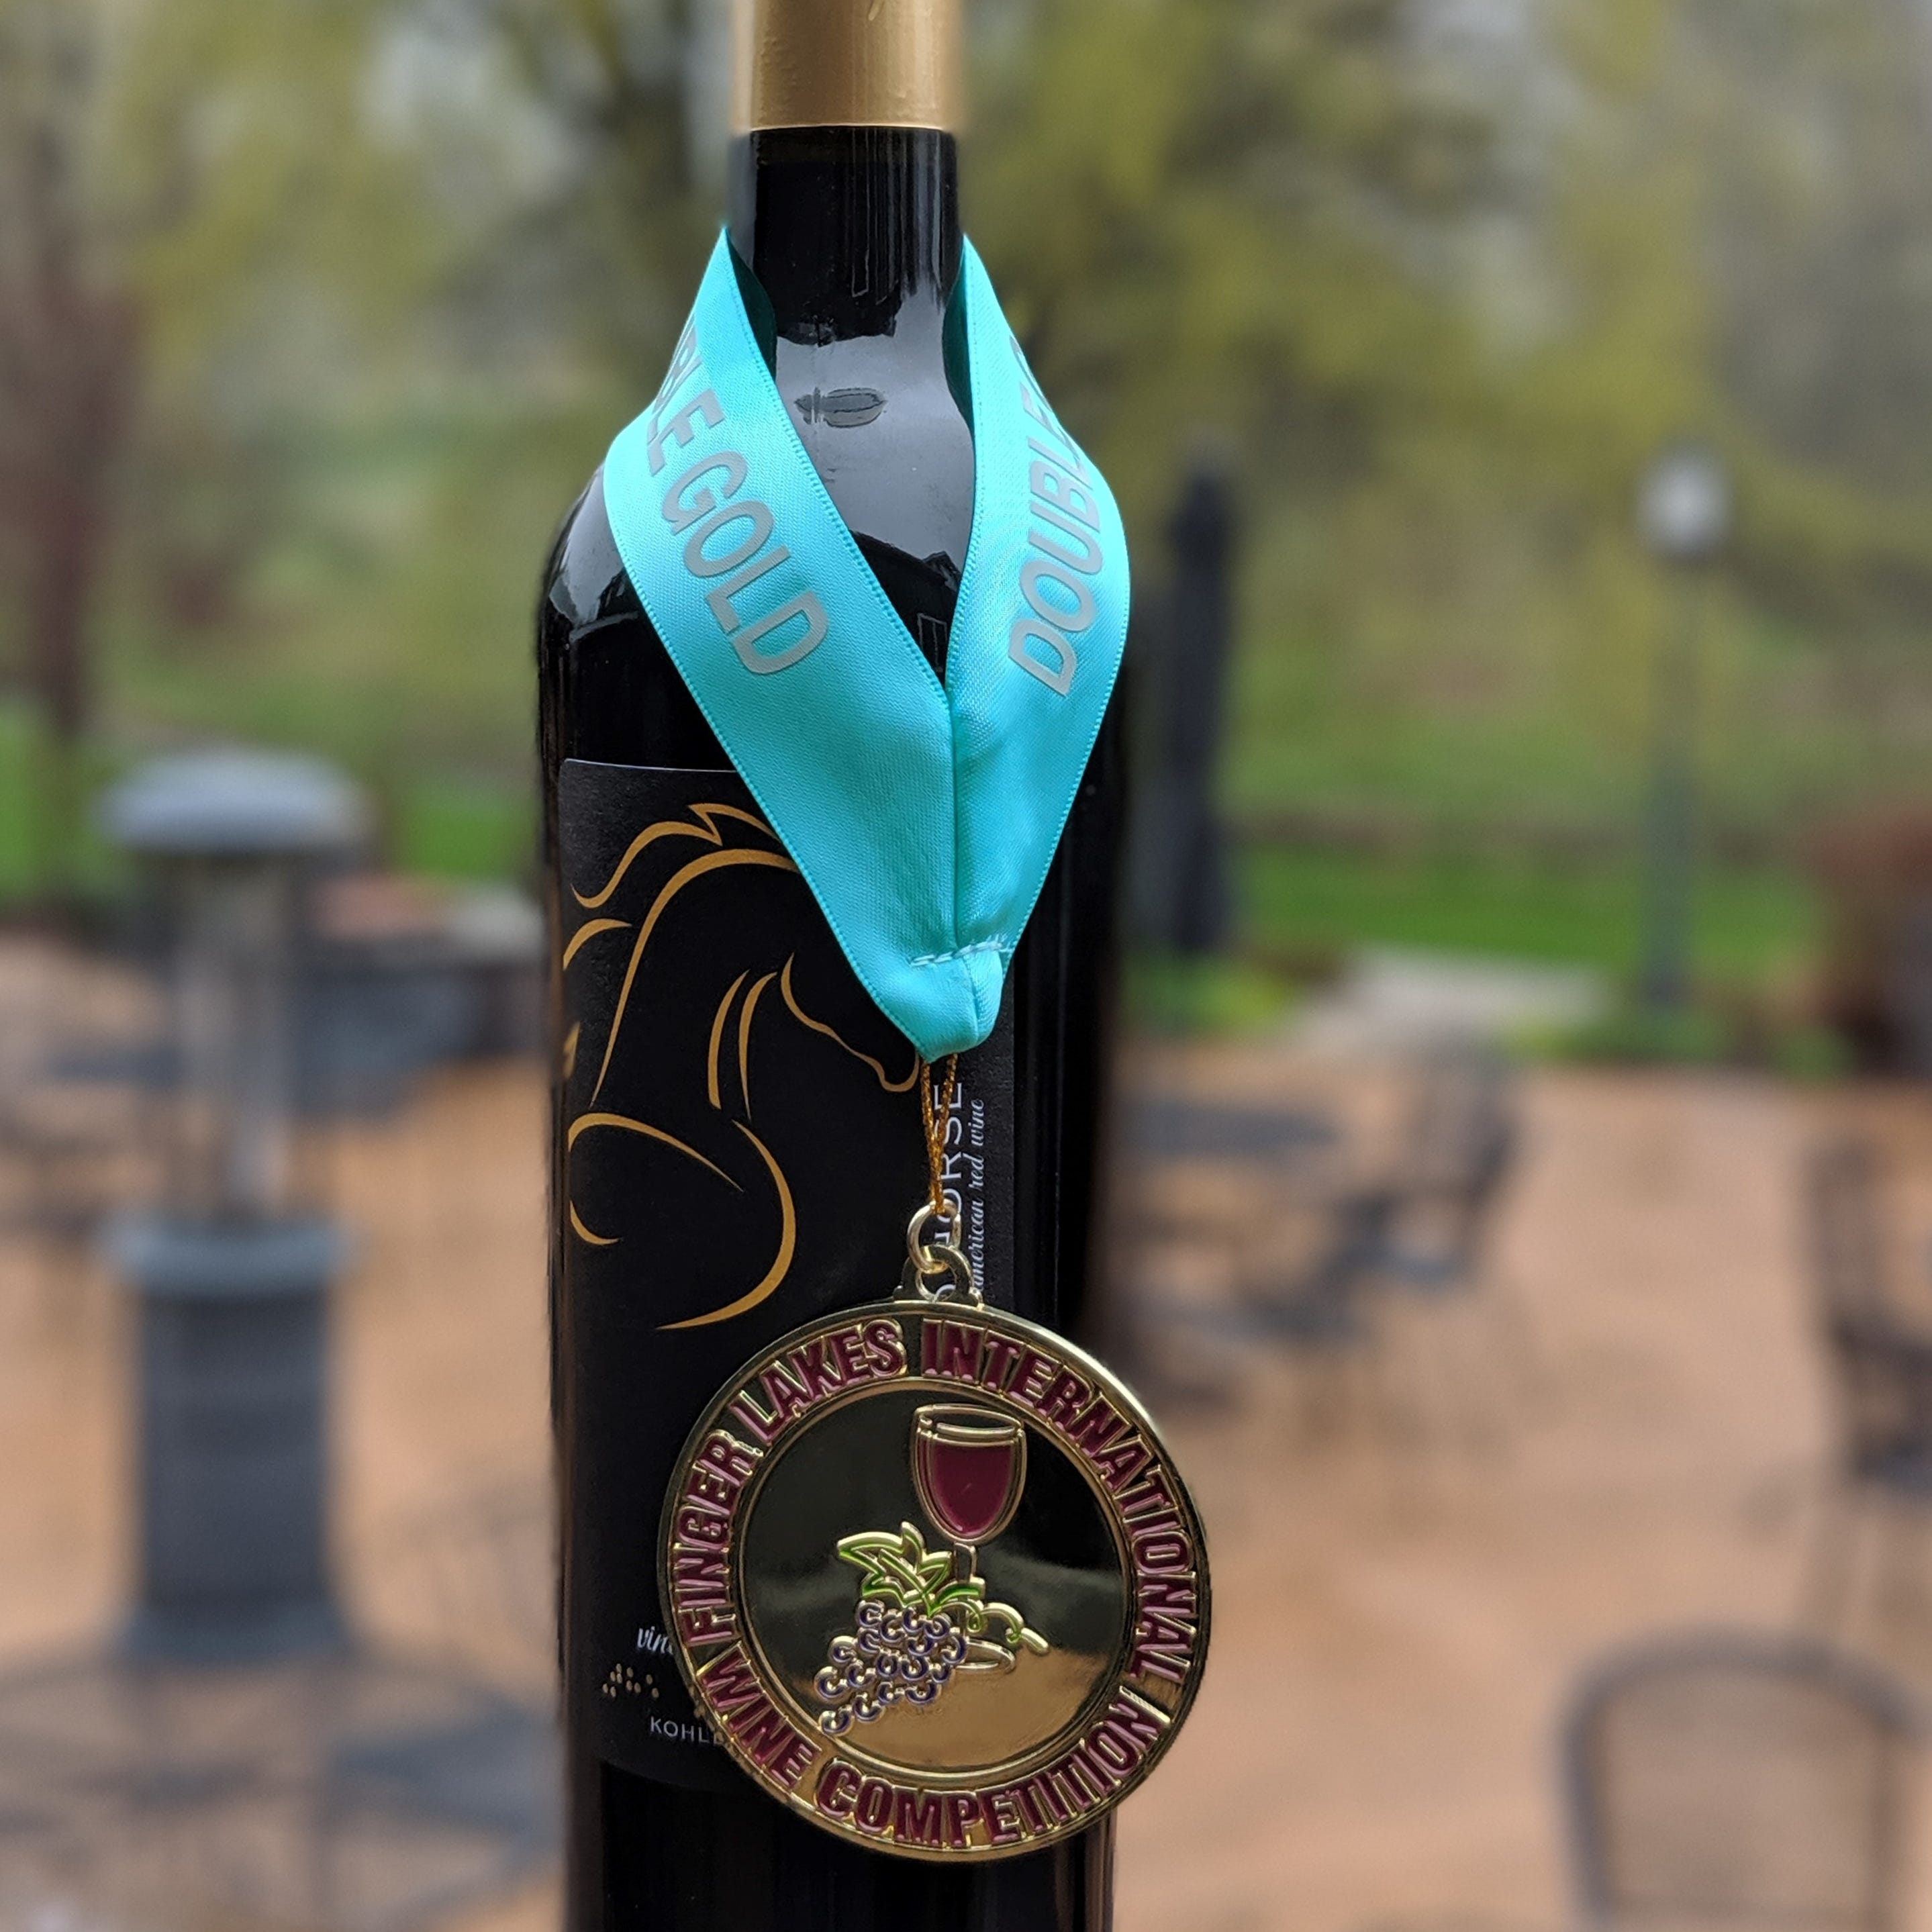 The Blind Horse in Kohler wins double gold at international wine competition | Streetwise